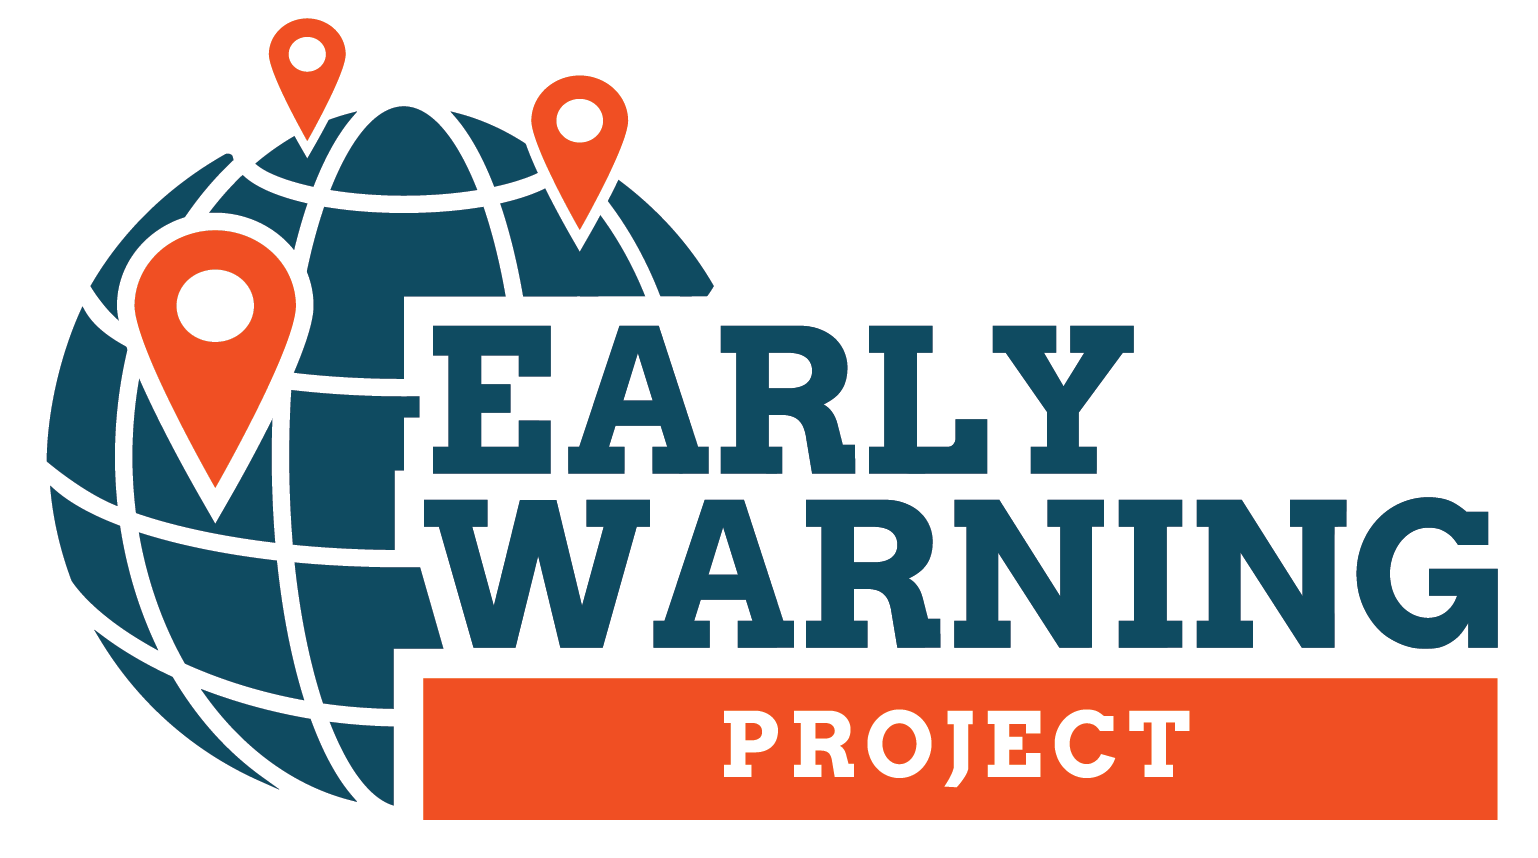 New Early Warning Project from the USHMM